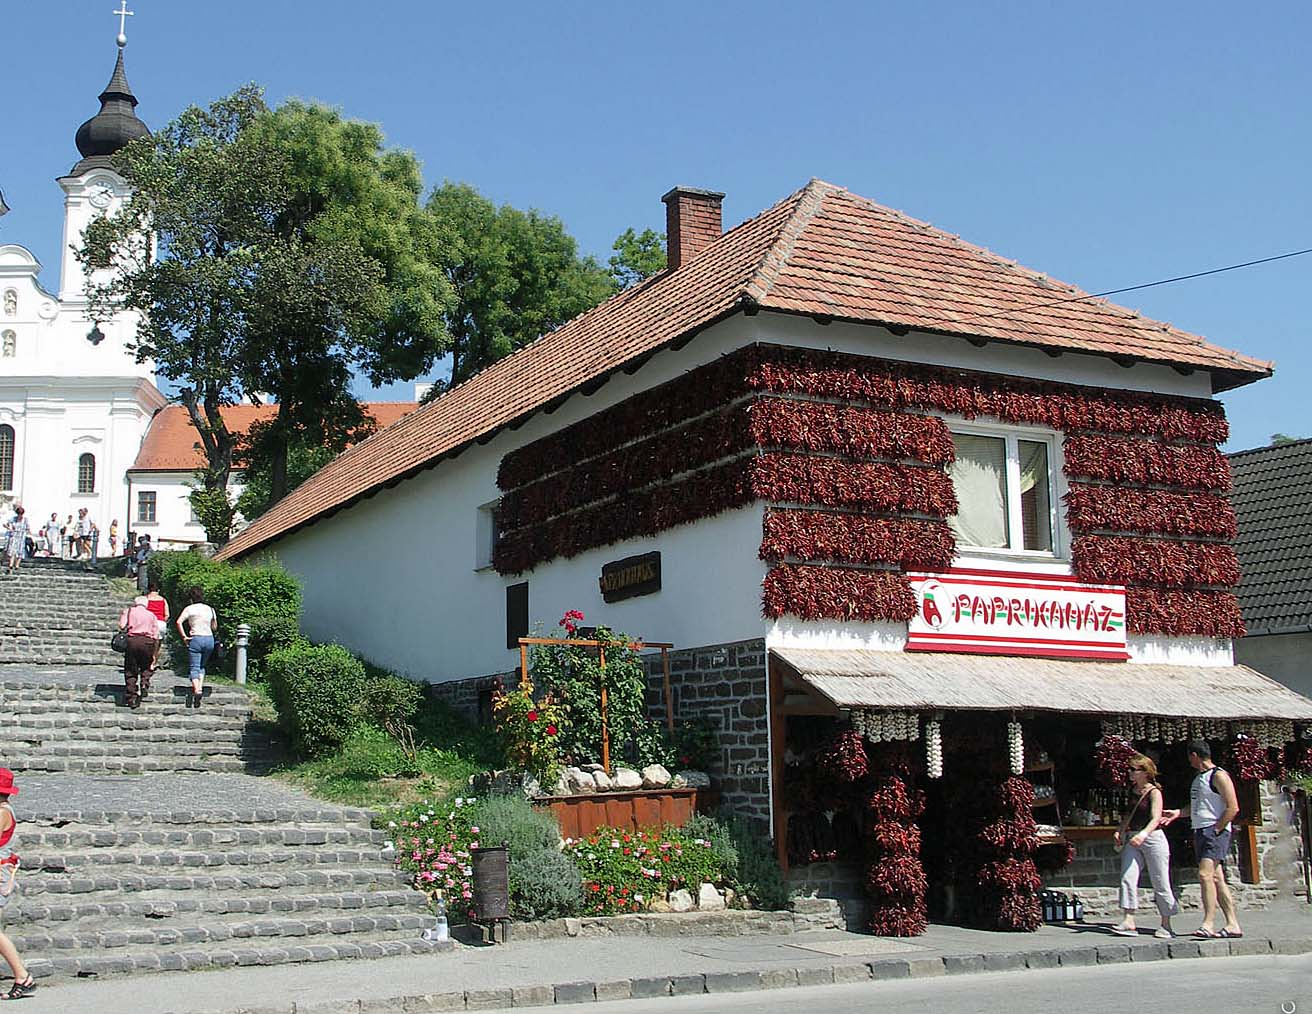 Paprikahuis in Tihany